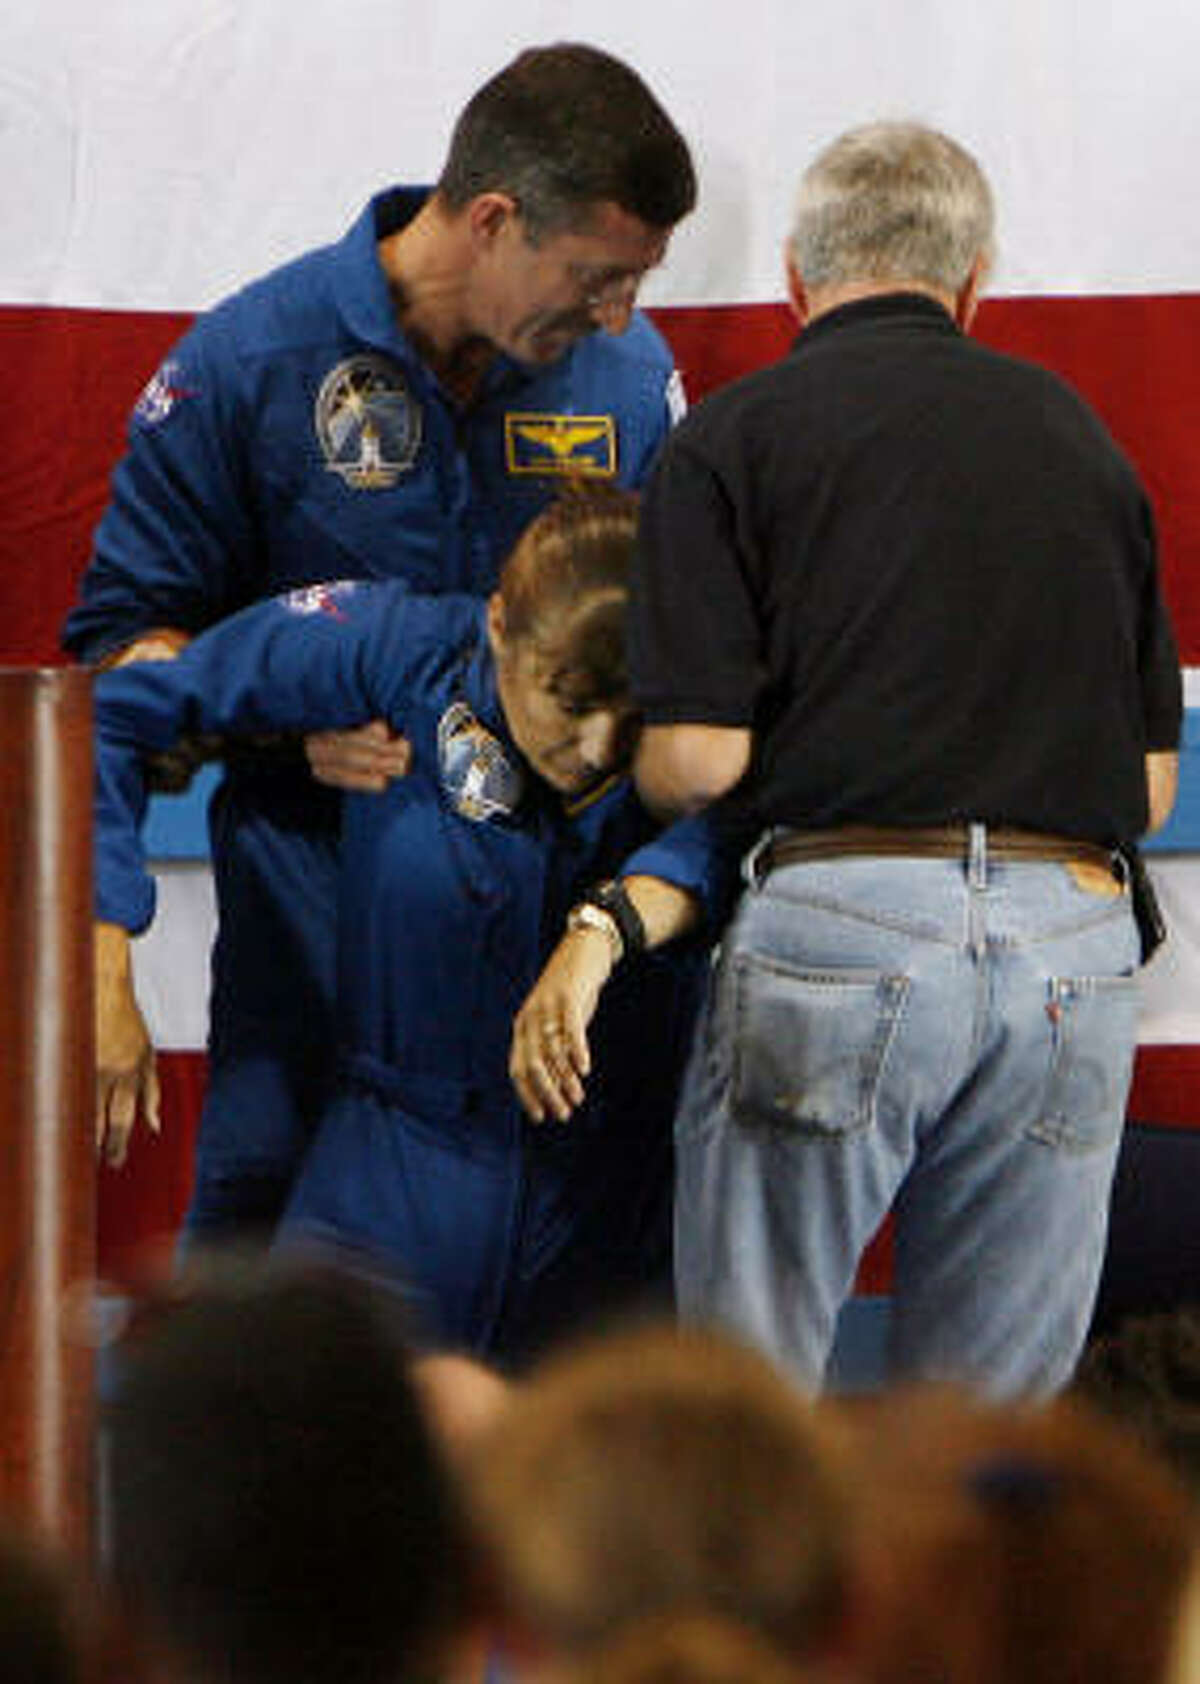 Astronaut Dan Burbank, left, and an unidentified man help Heide Stefanyshyn-Piper after she fainted a second time Friday on a stage at Ellington Field.